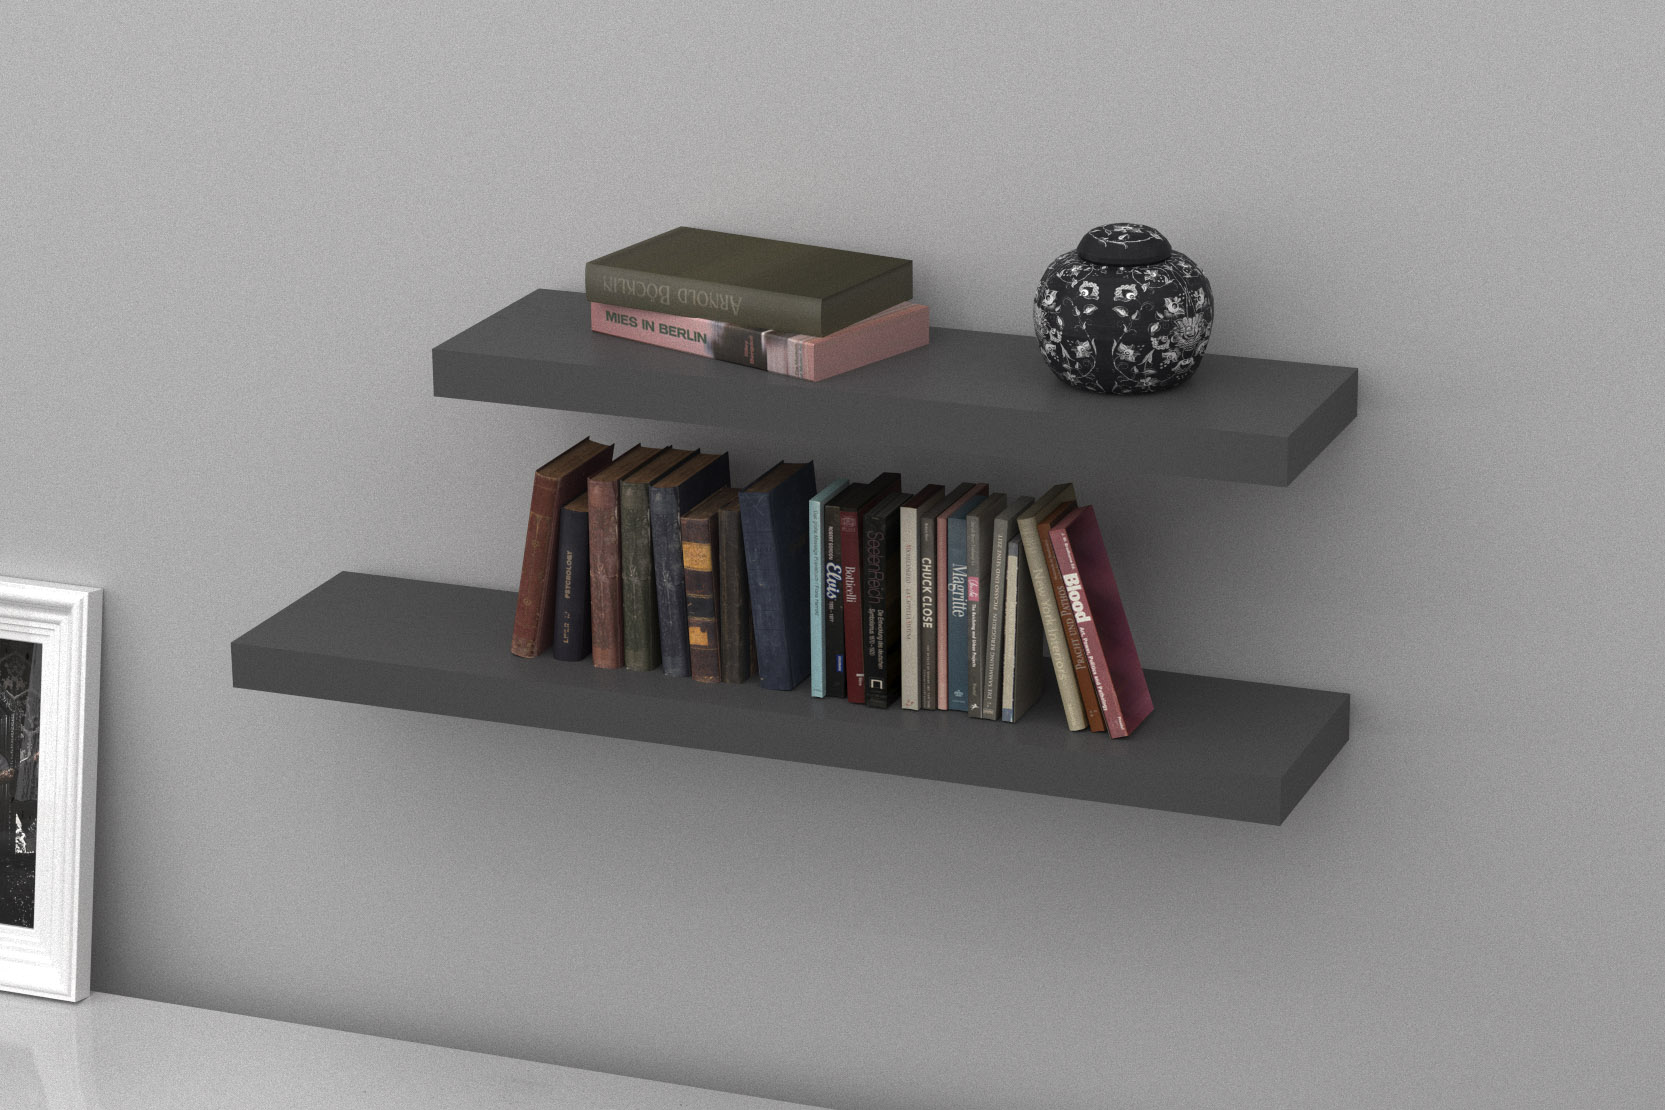 floating shelves the shelving stone grey double lengths black gloss shelf kitchen cabinet rack ikea decorating ideas old wood fireplace surrounds hacks men shoe organizer large